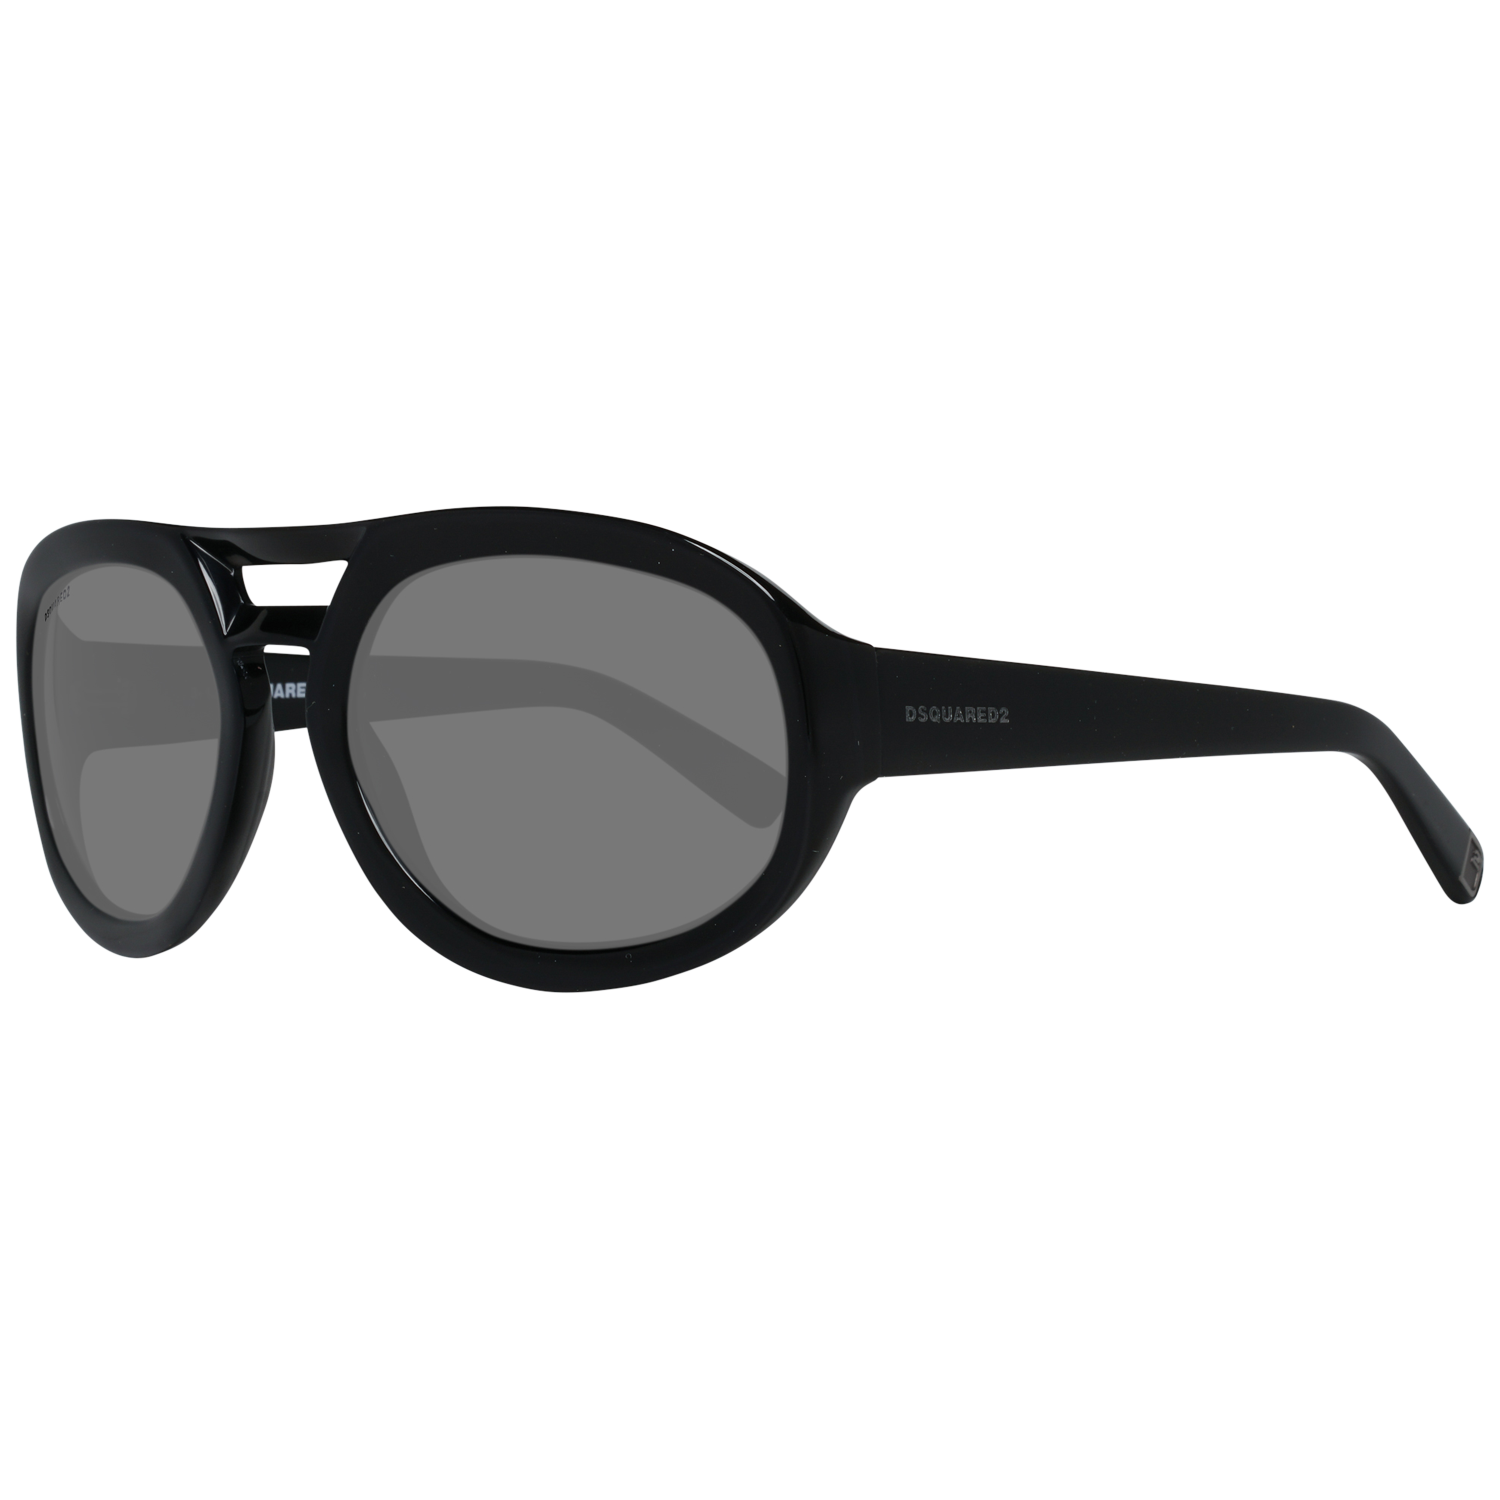 Dsquared2 Sunglasses DQ0258 01B 62 Black